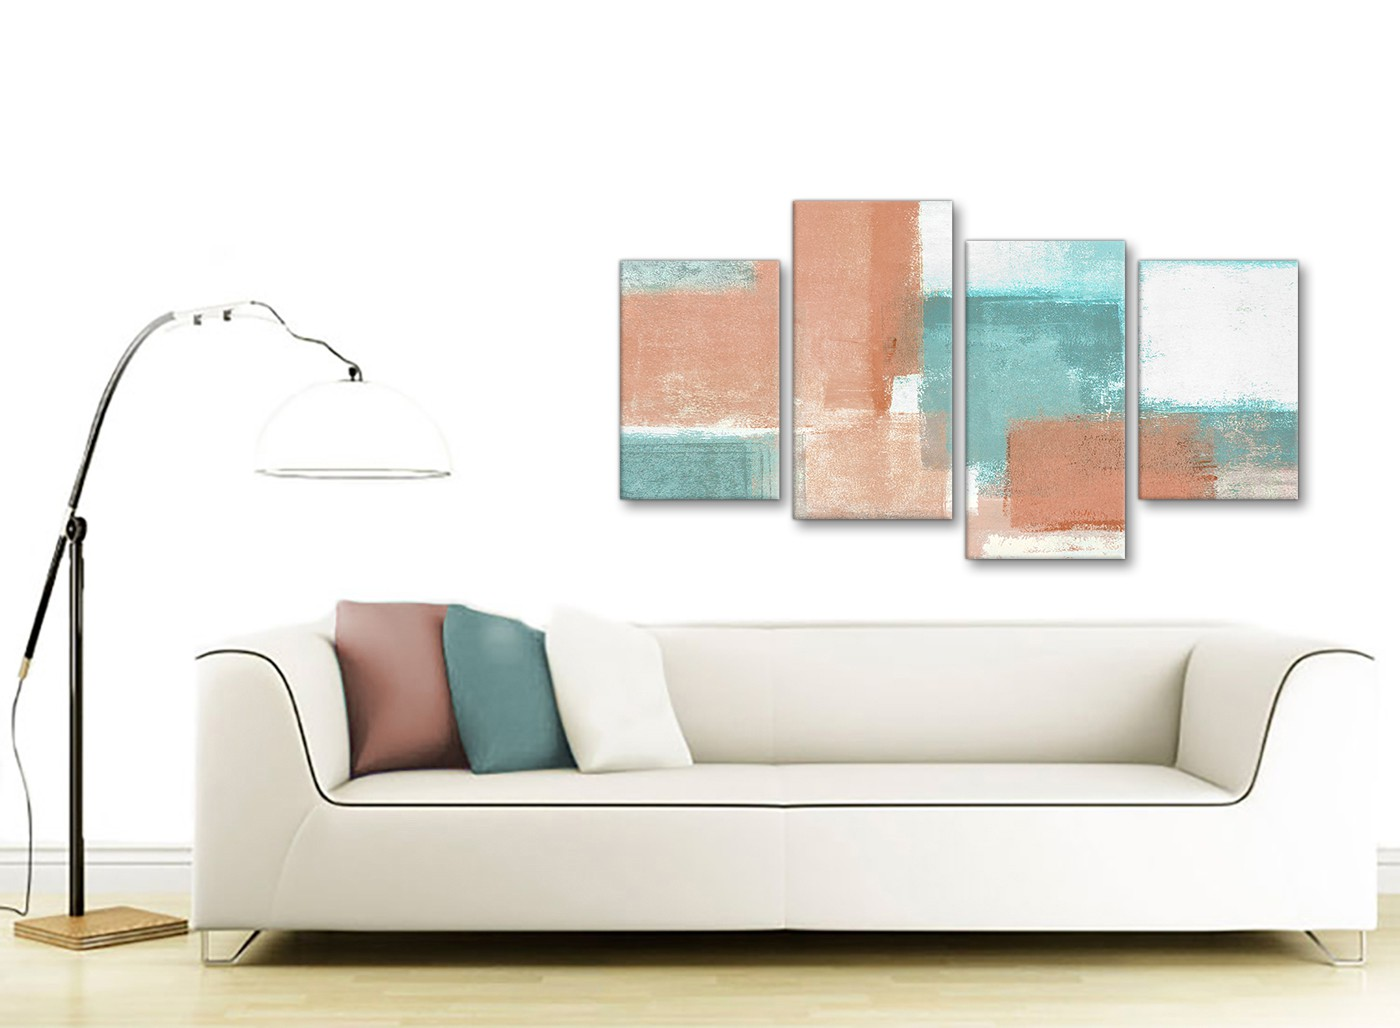 Large Coral Turquoise Abstract Bedroom Canvas Pictures Decor 4366 130cm Set Of Prints